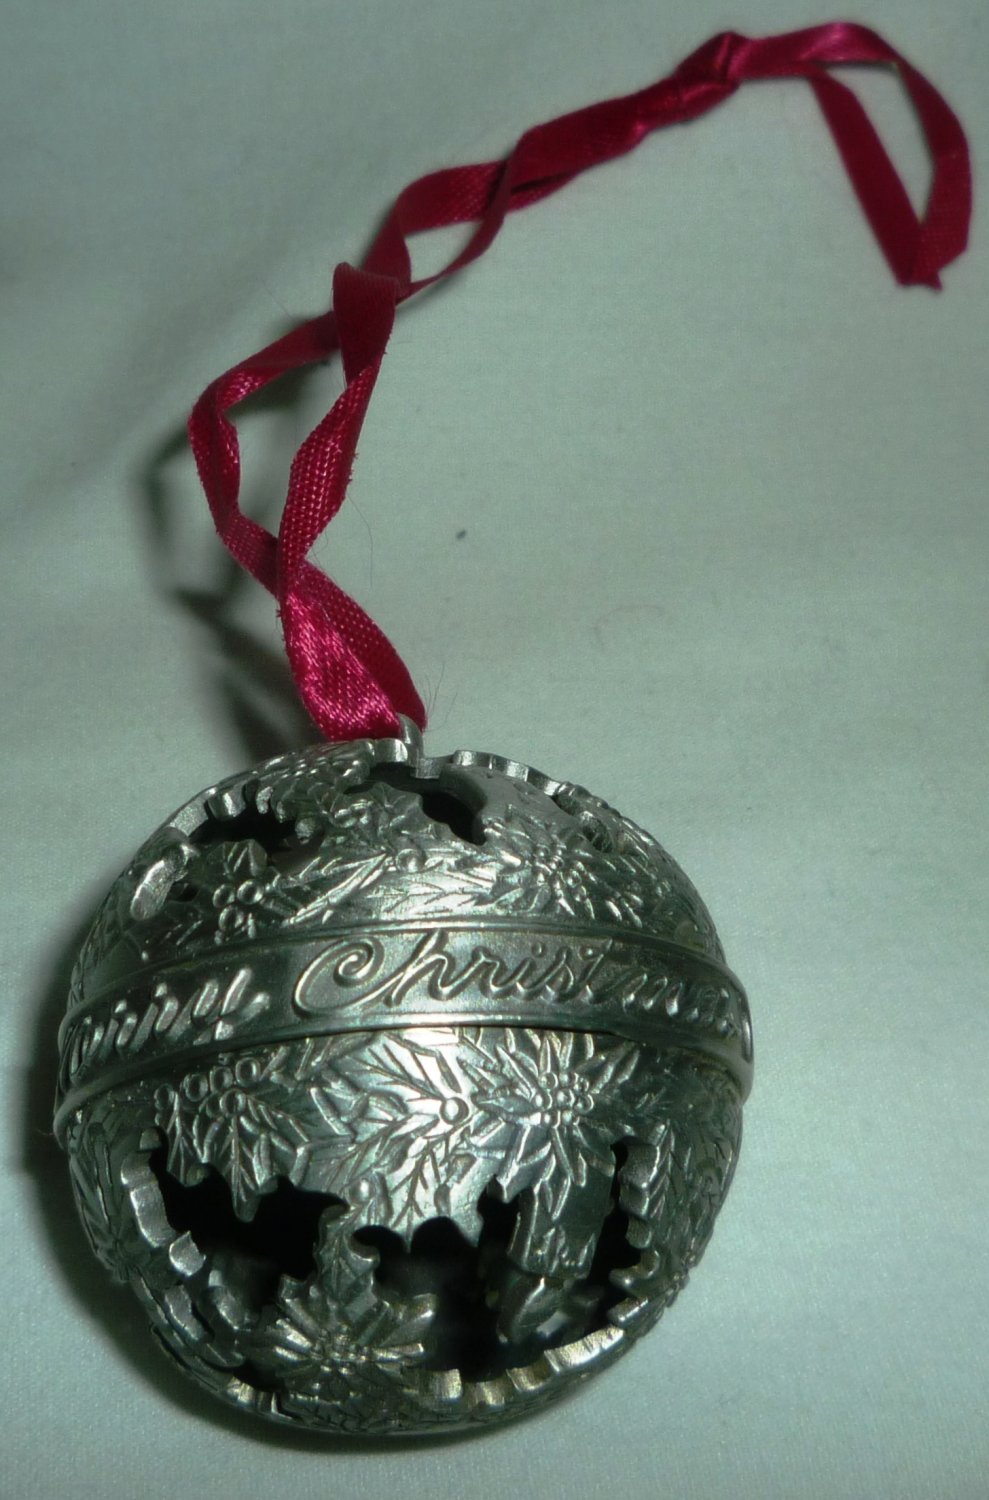 VINTAGE CHRISTMAS PEWTER BALL ORNAMENT 'MERRY CHRISTMAS' HOLY LEAVES